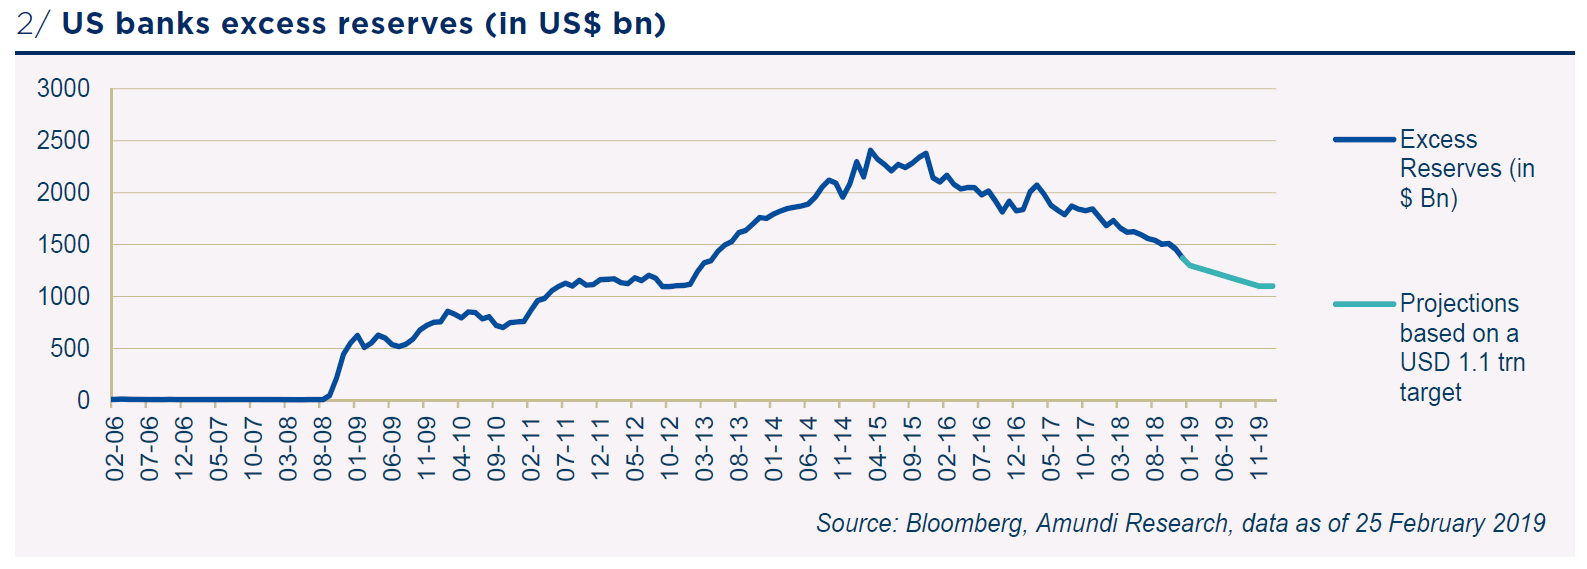 US Banks excess reserves (in US$ bn)